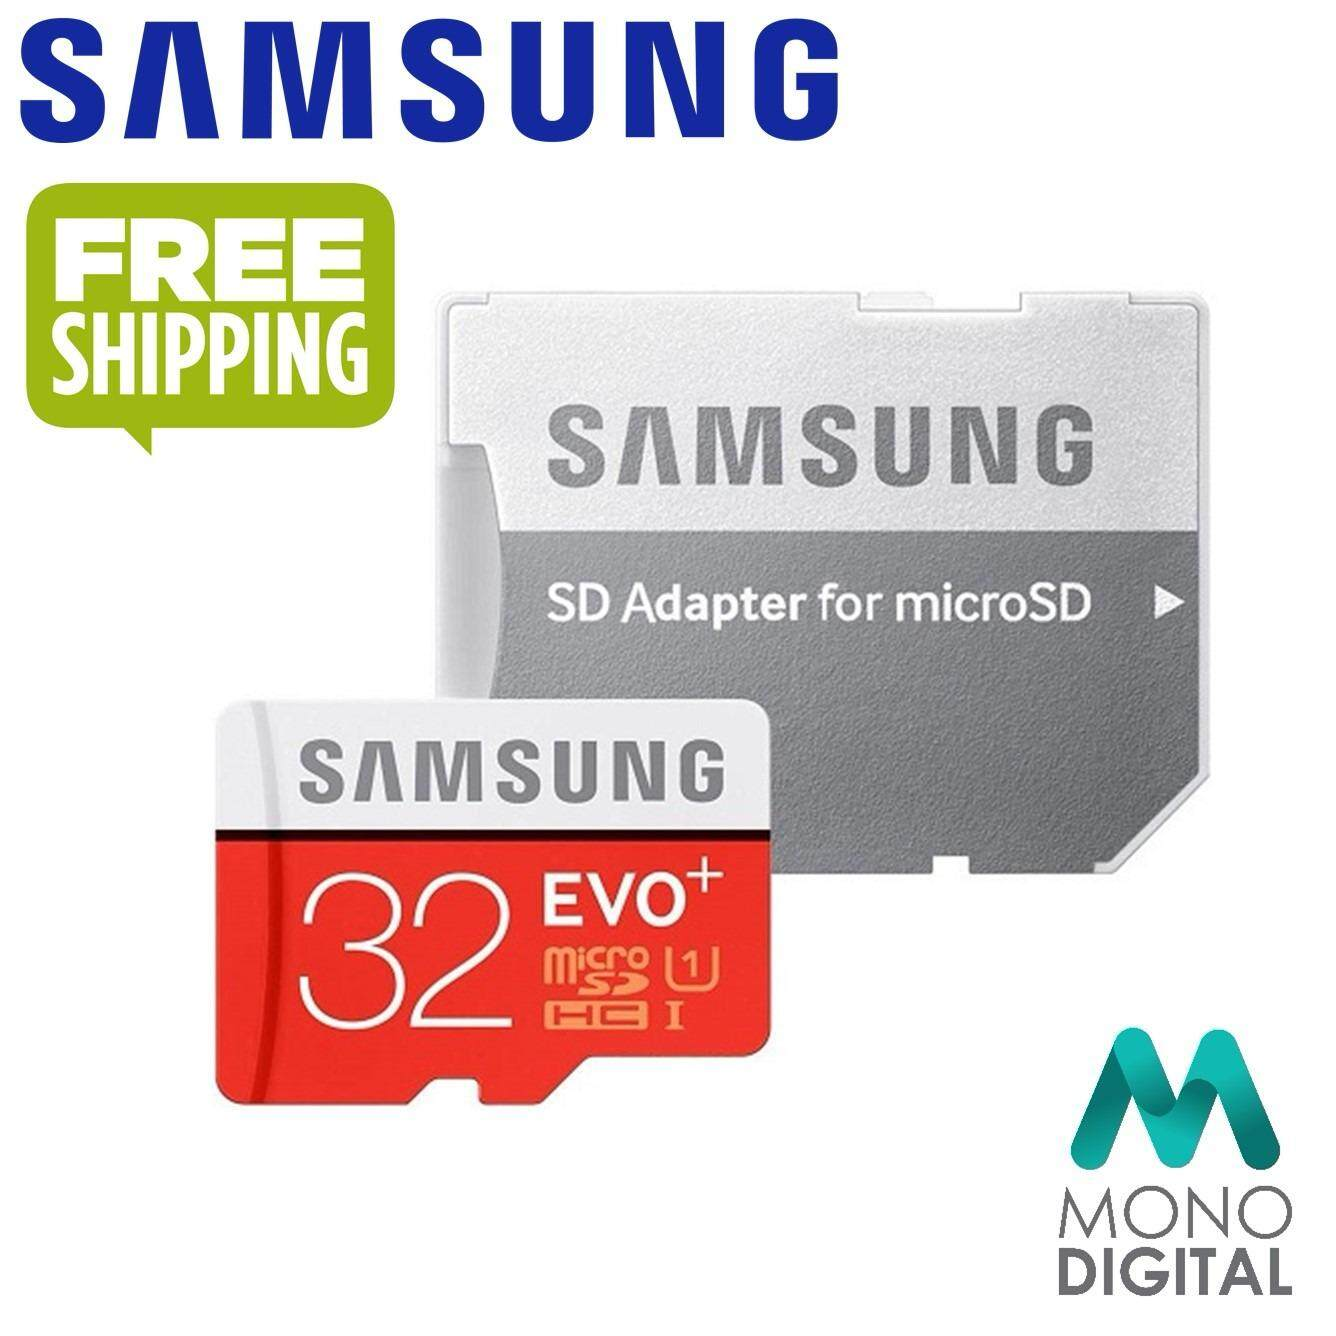 Samsung 32GB 95MB/s Micro SD Evo Plus Class 10 MicroSDHC UHS-I with FREE Adapter